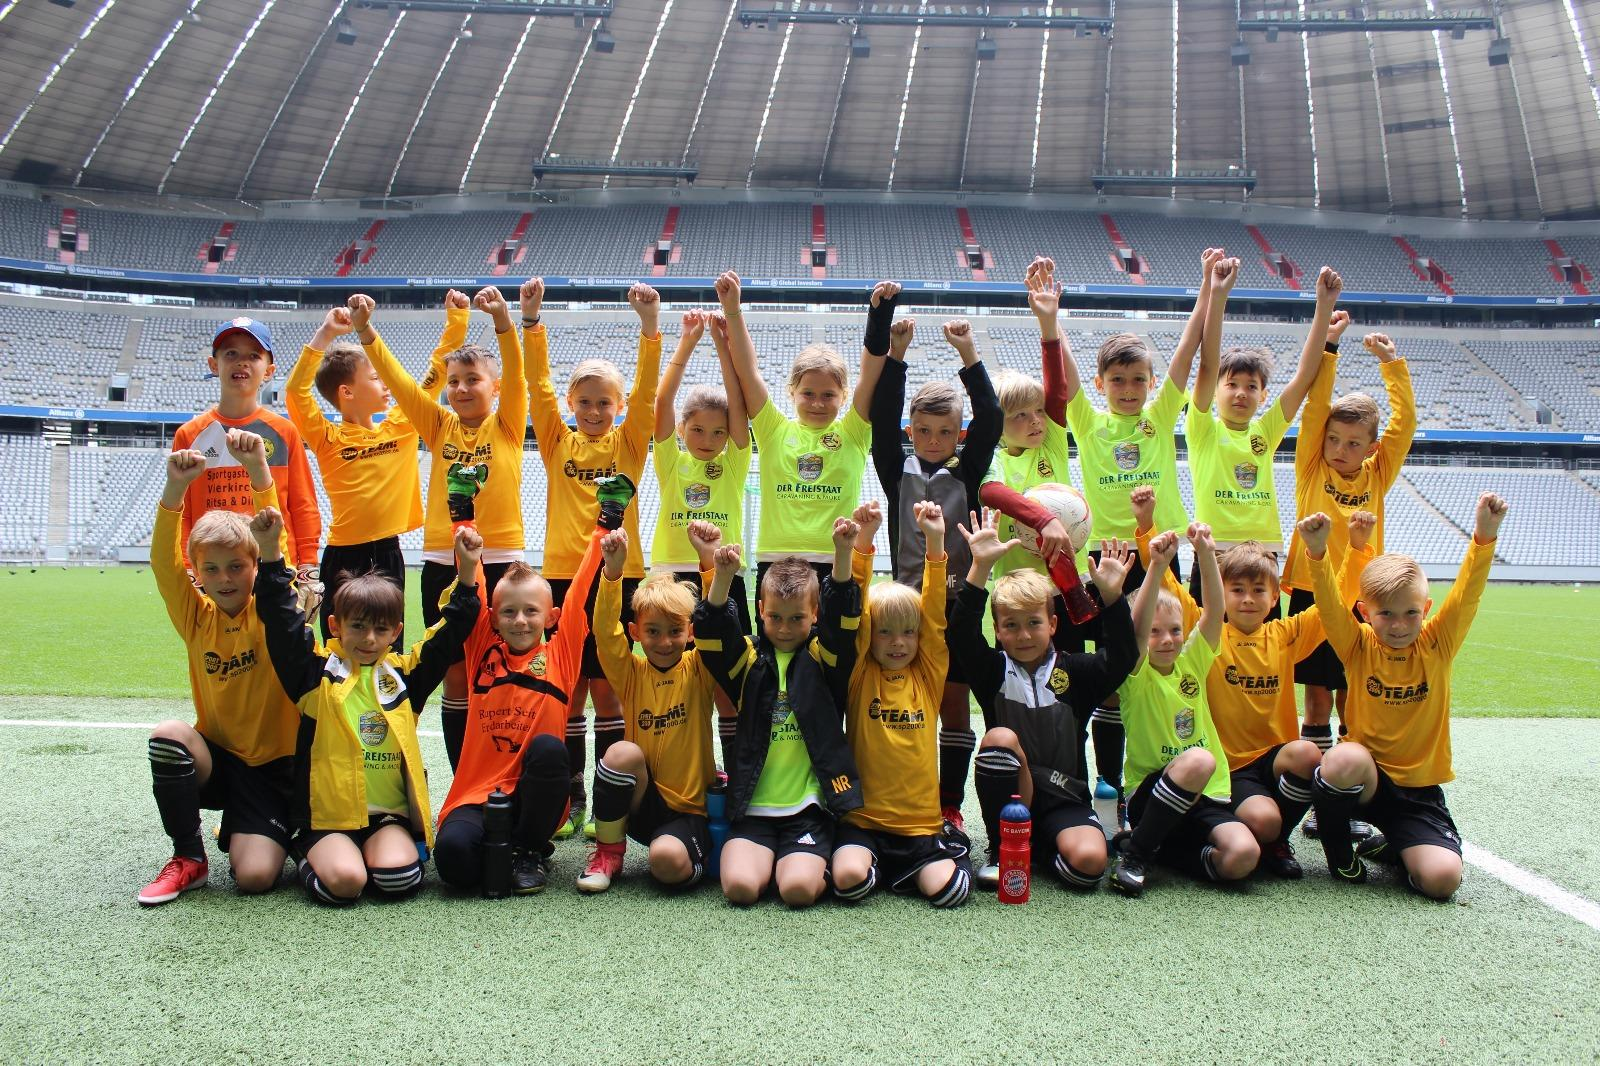 tl_files/bilder/Abteilungen/Fussball/Junioren/2018Allianz/20180611AllianzArena3.JPG